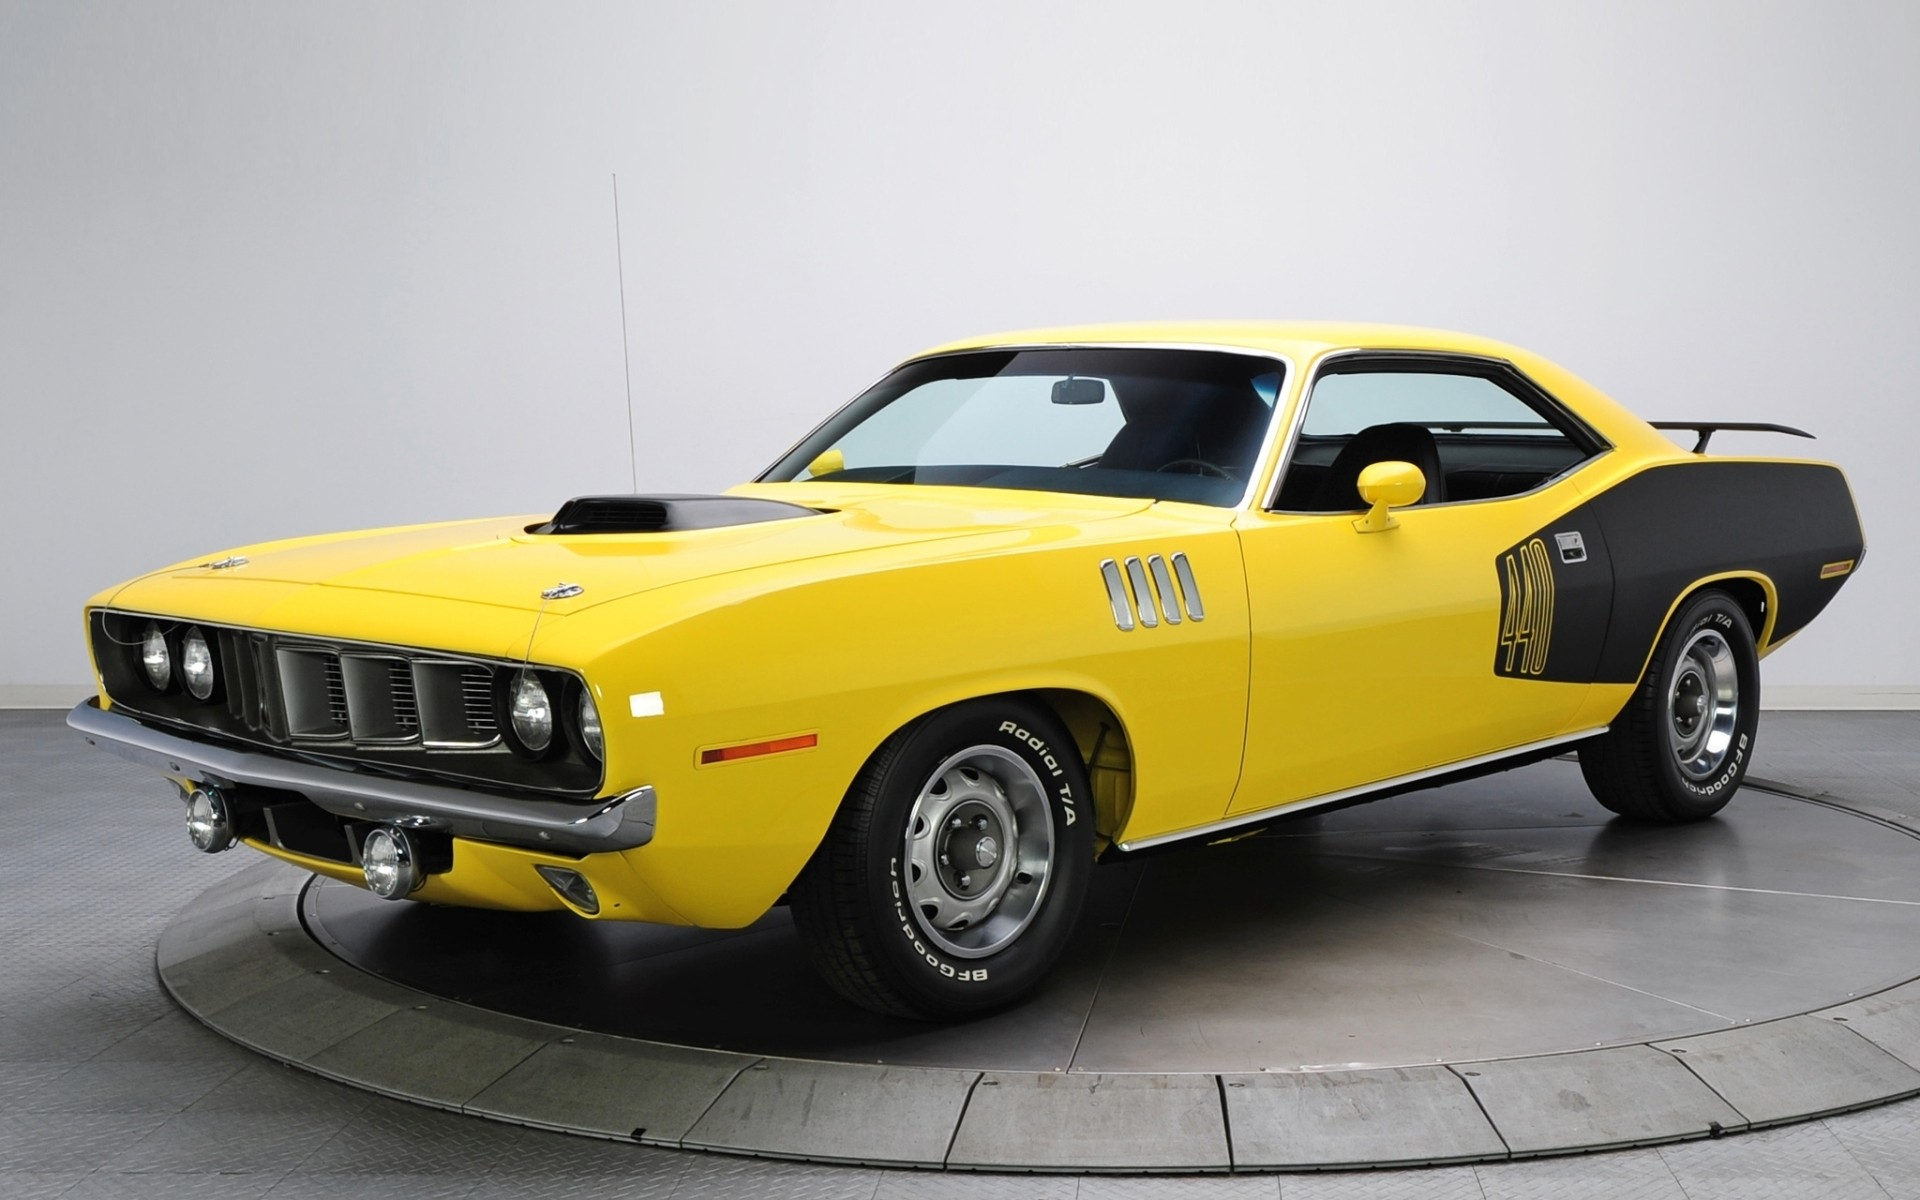 voiture dodge muscle car jaune et noir wallpaper hd car yellow black 1920x1200